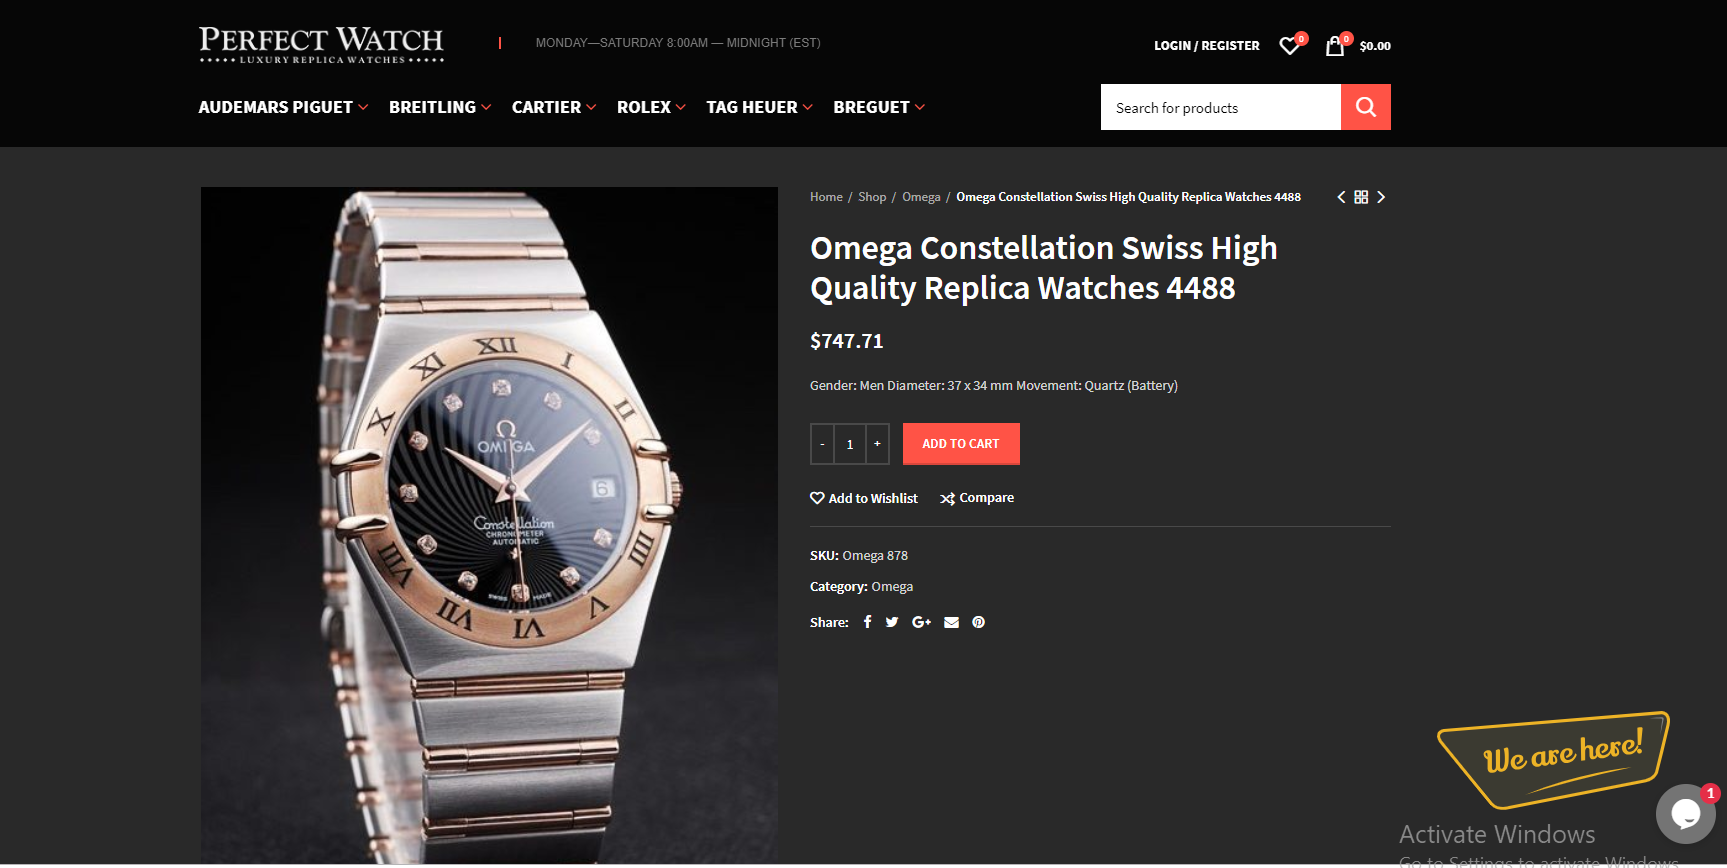 bc2441e37f36 What are the best sites to buy high-quality replica watches  - Quora